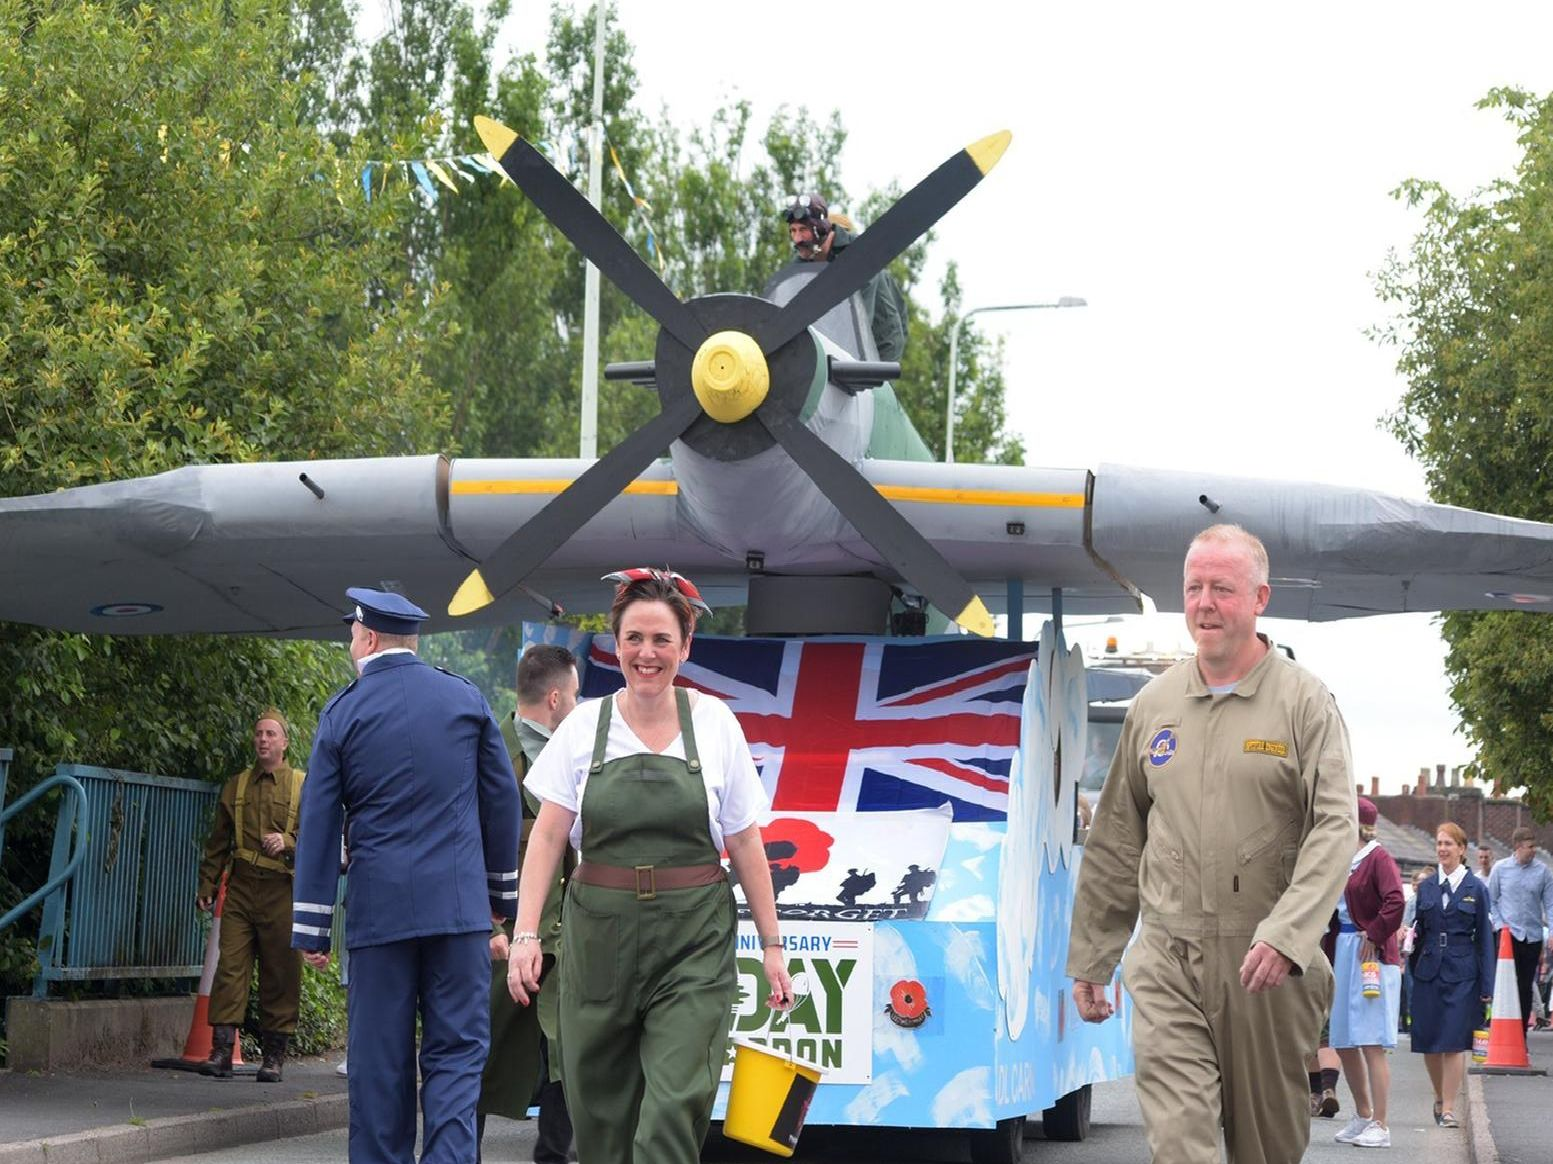 The Gala Group's Spitfire trundles through Adlington as part of the carnival